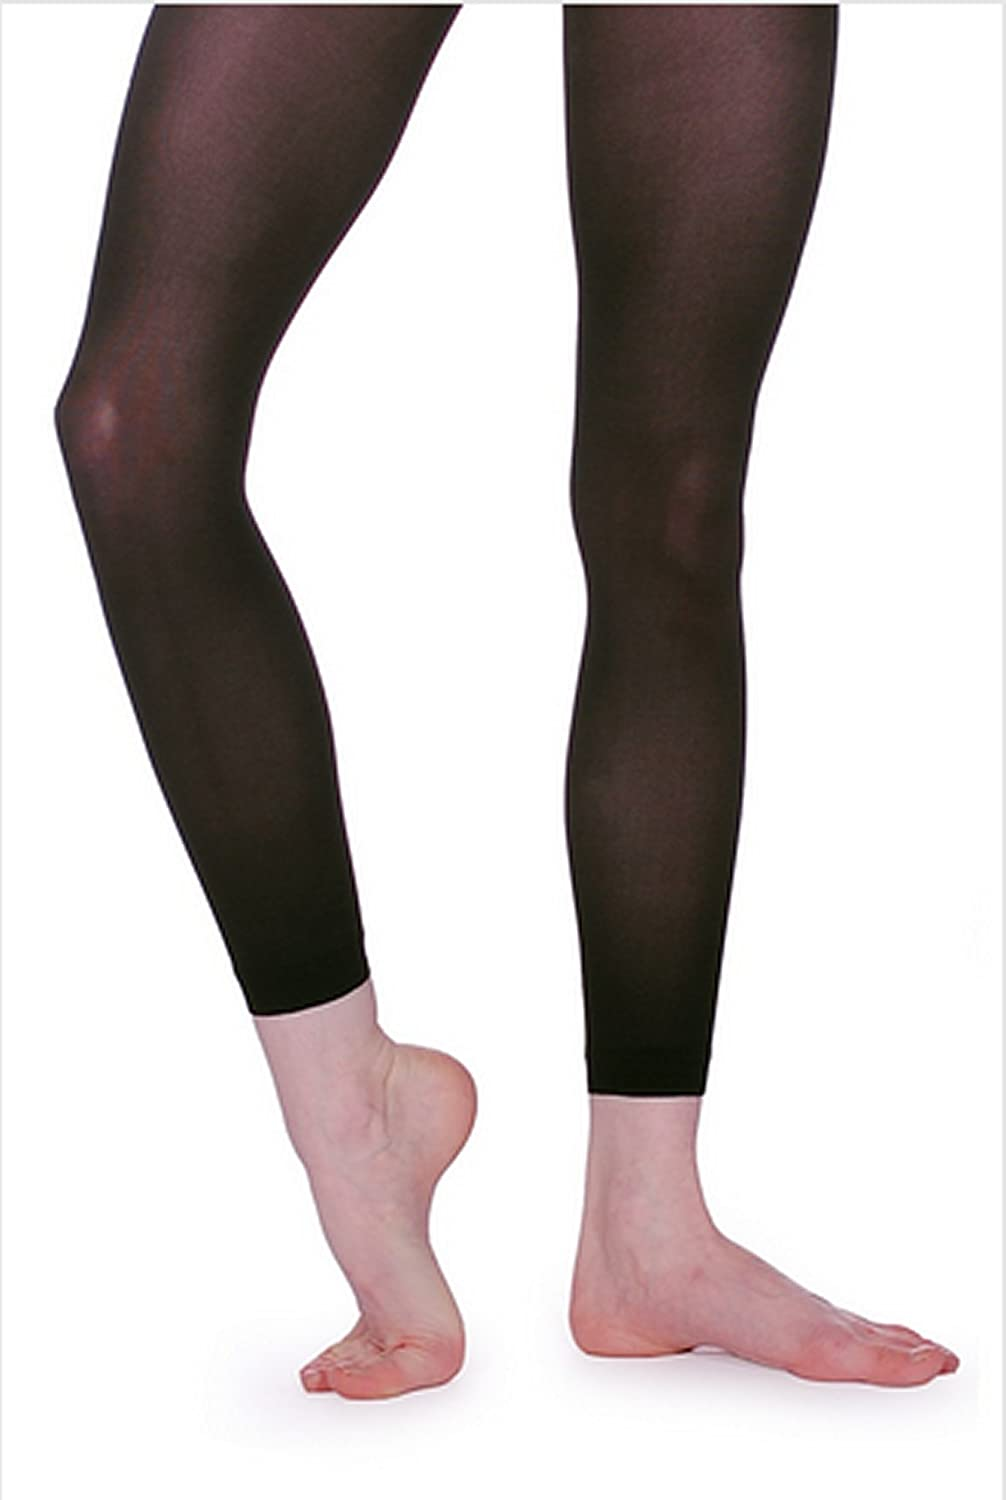 Ankle Length Sheer Tights Girls Ladies Dance Wear 4 Maids Roch Valley Footless Tights From Active Dancewear